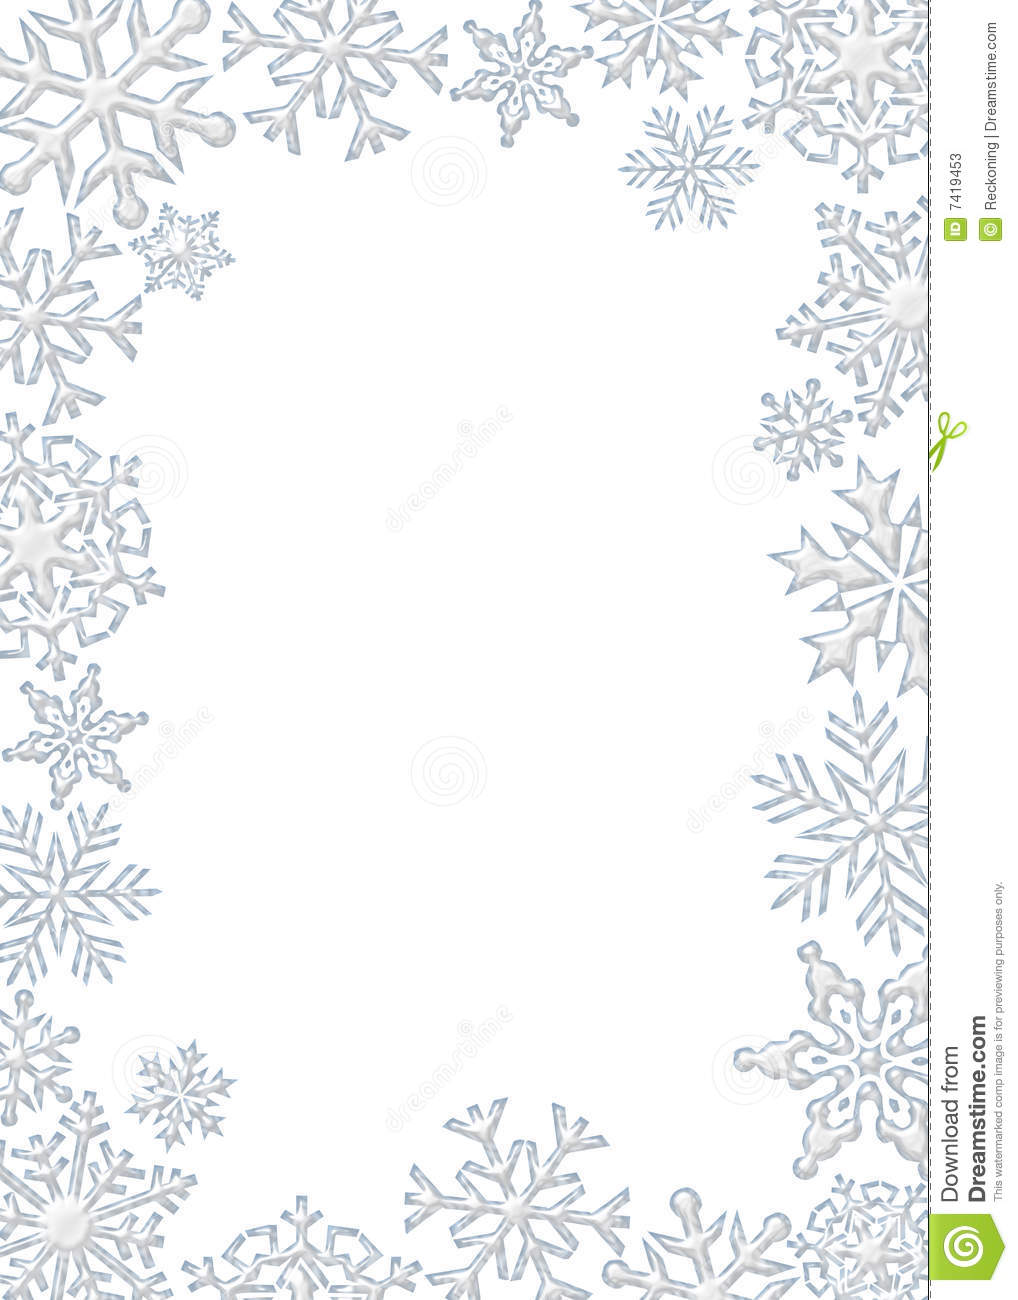 Graphic Illustration Of White - Snowflake Clipart Border